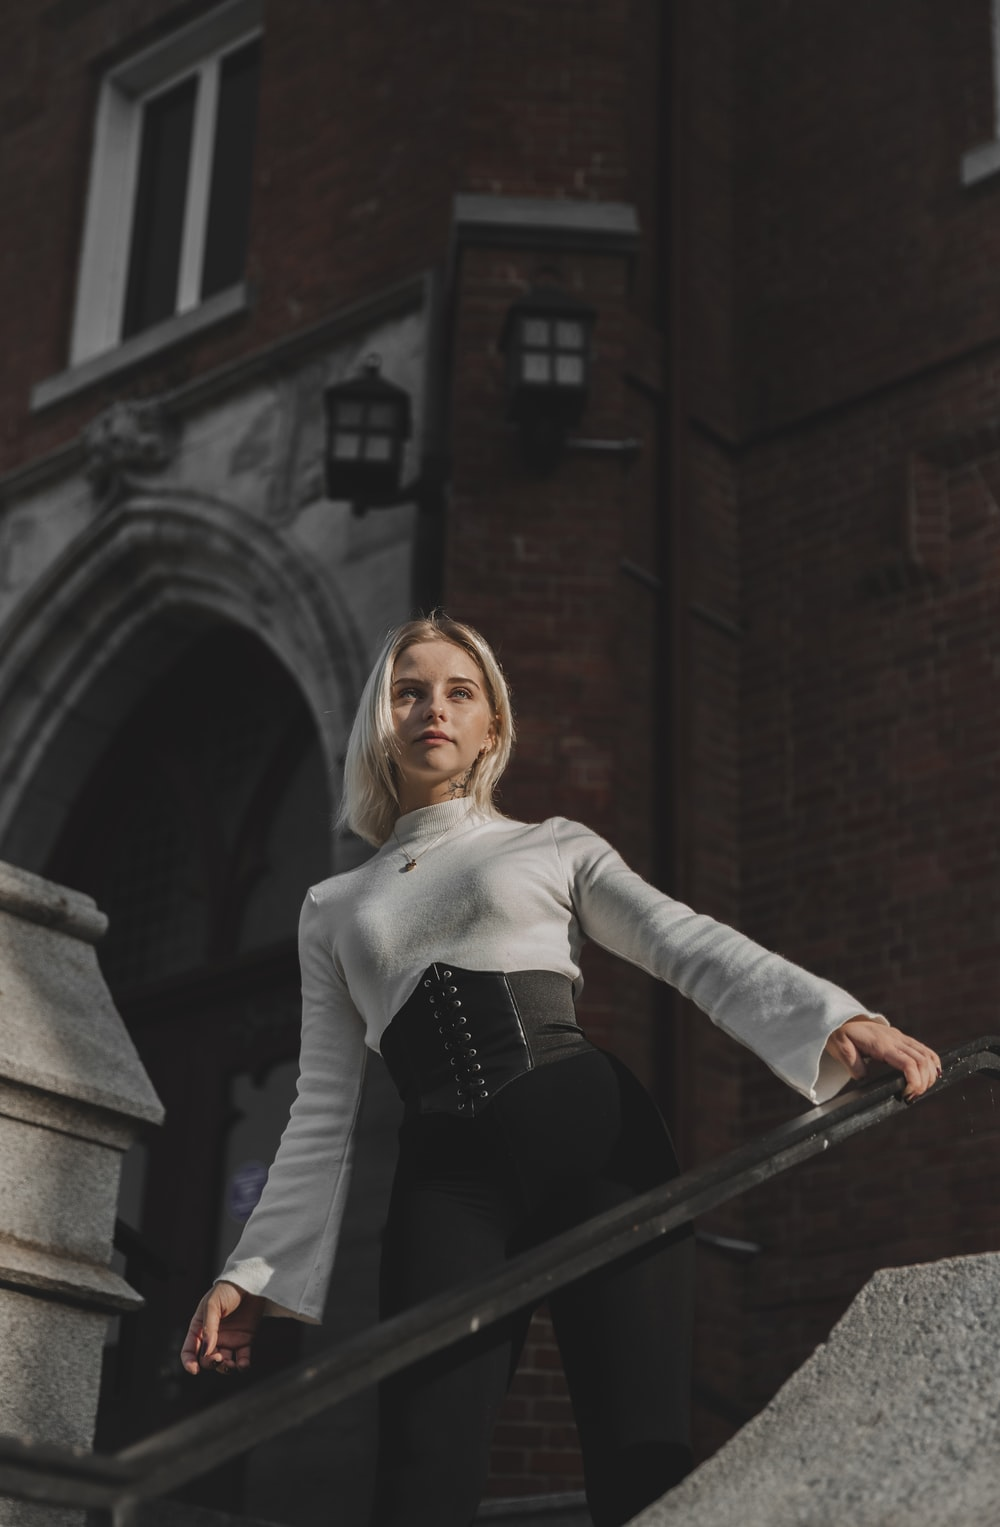 woman in white long sleeve shirt and black skirt standing on stairs